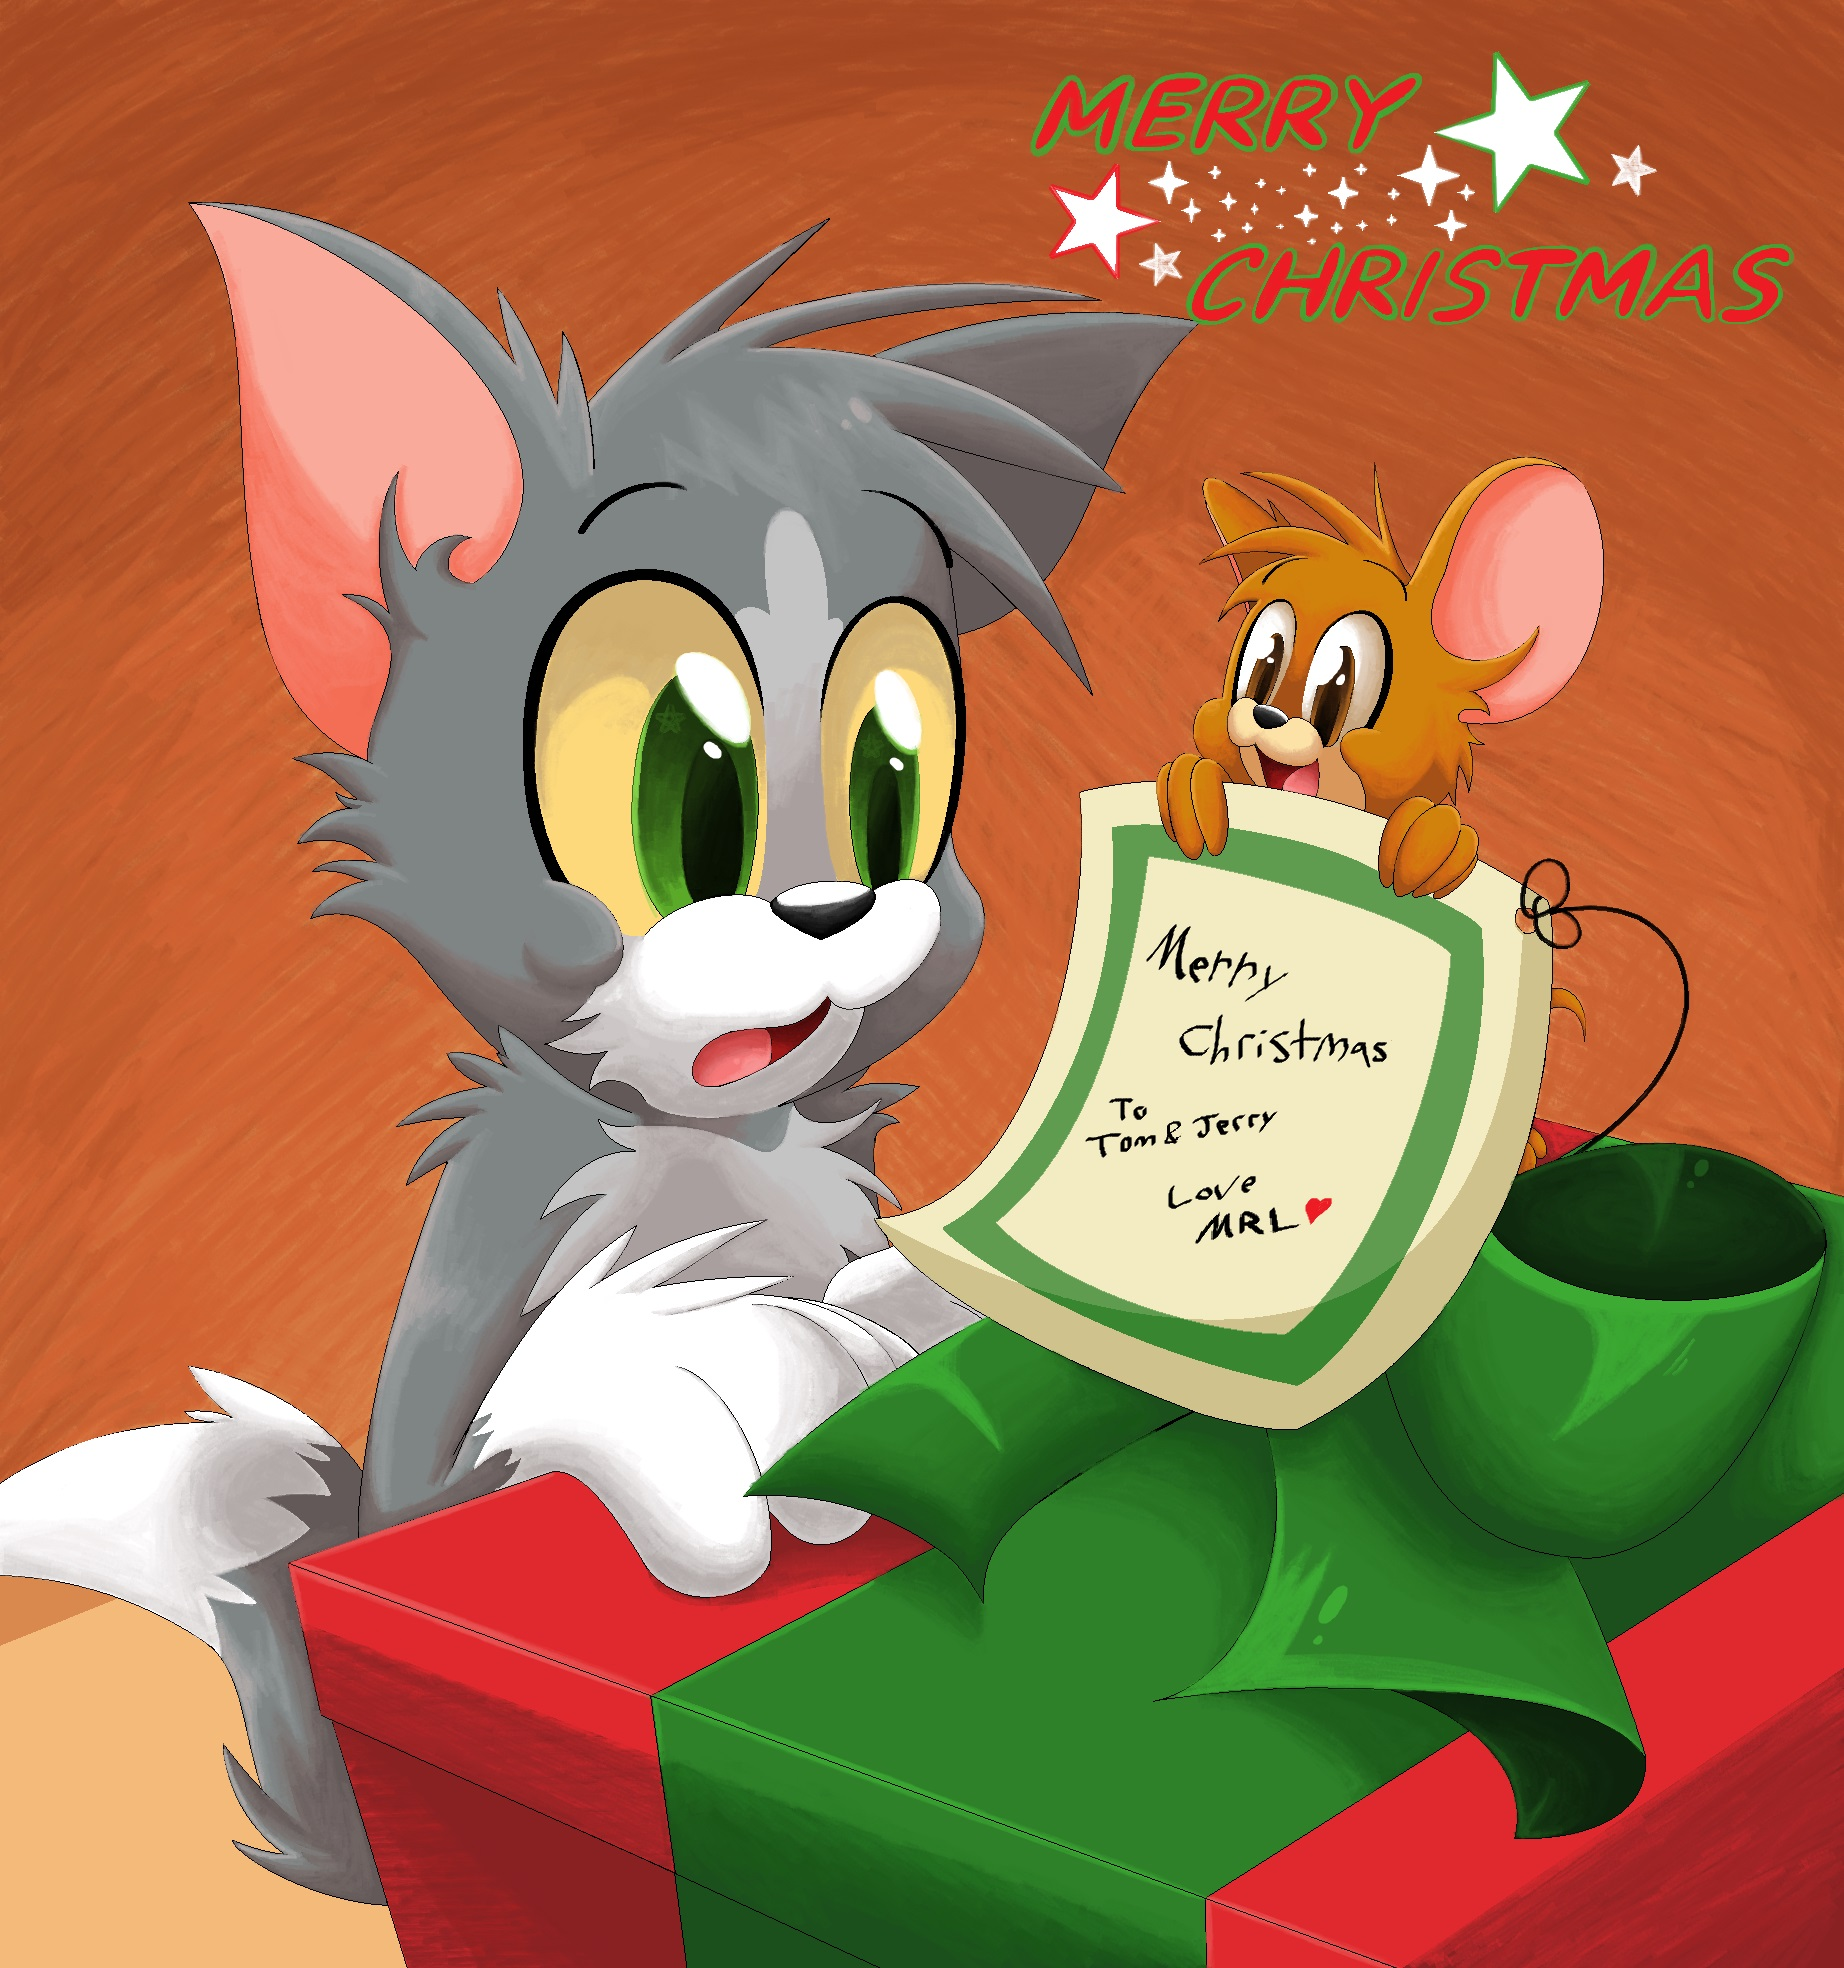 Merry Christmas Tom And Jerry By Mordecairigbylover On